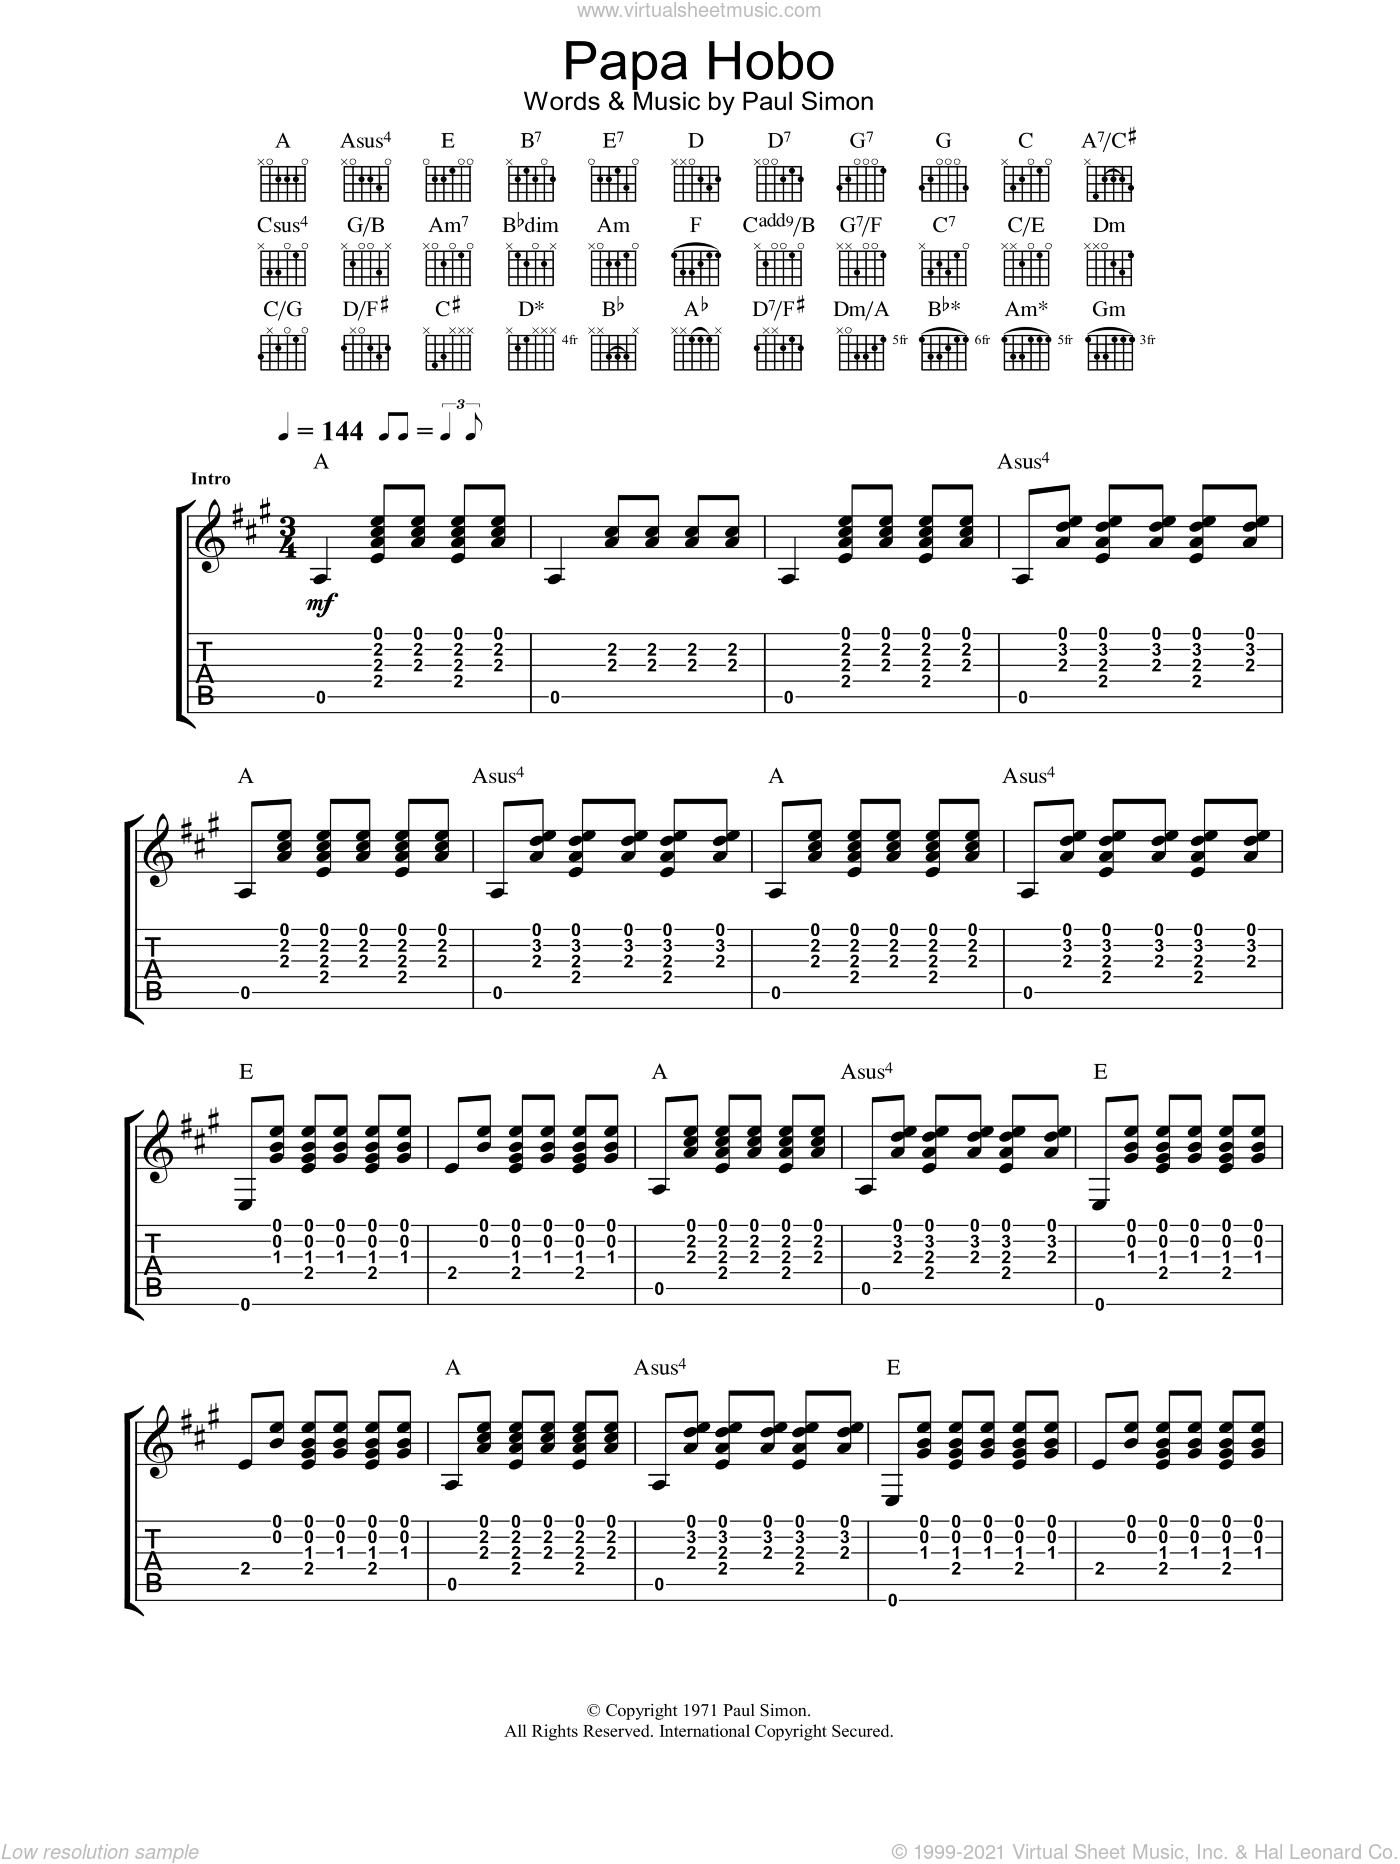 Papa Hobo sheet music for guitar (tablature) by Paul Simon, intermediate skill level